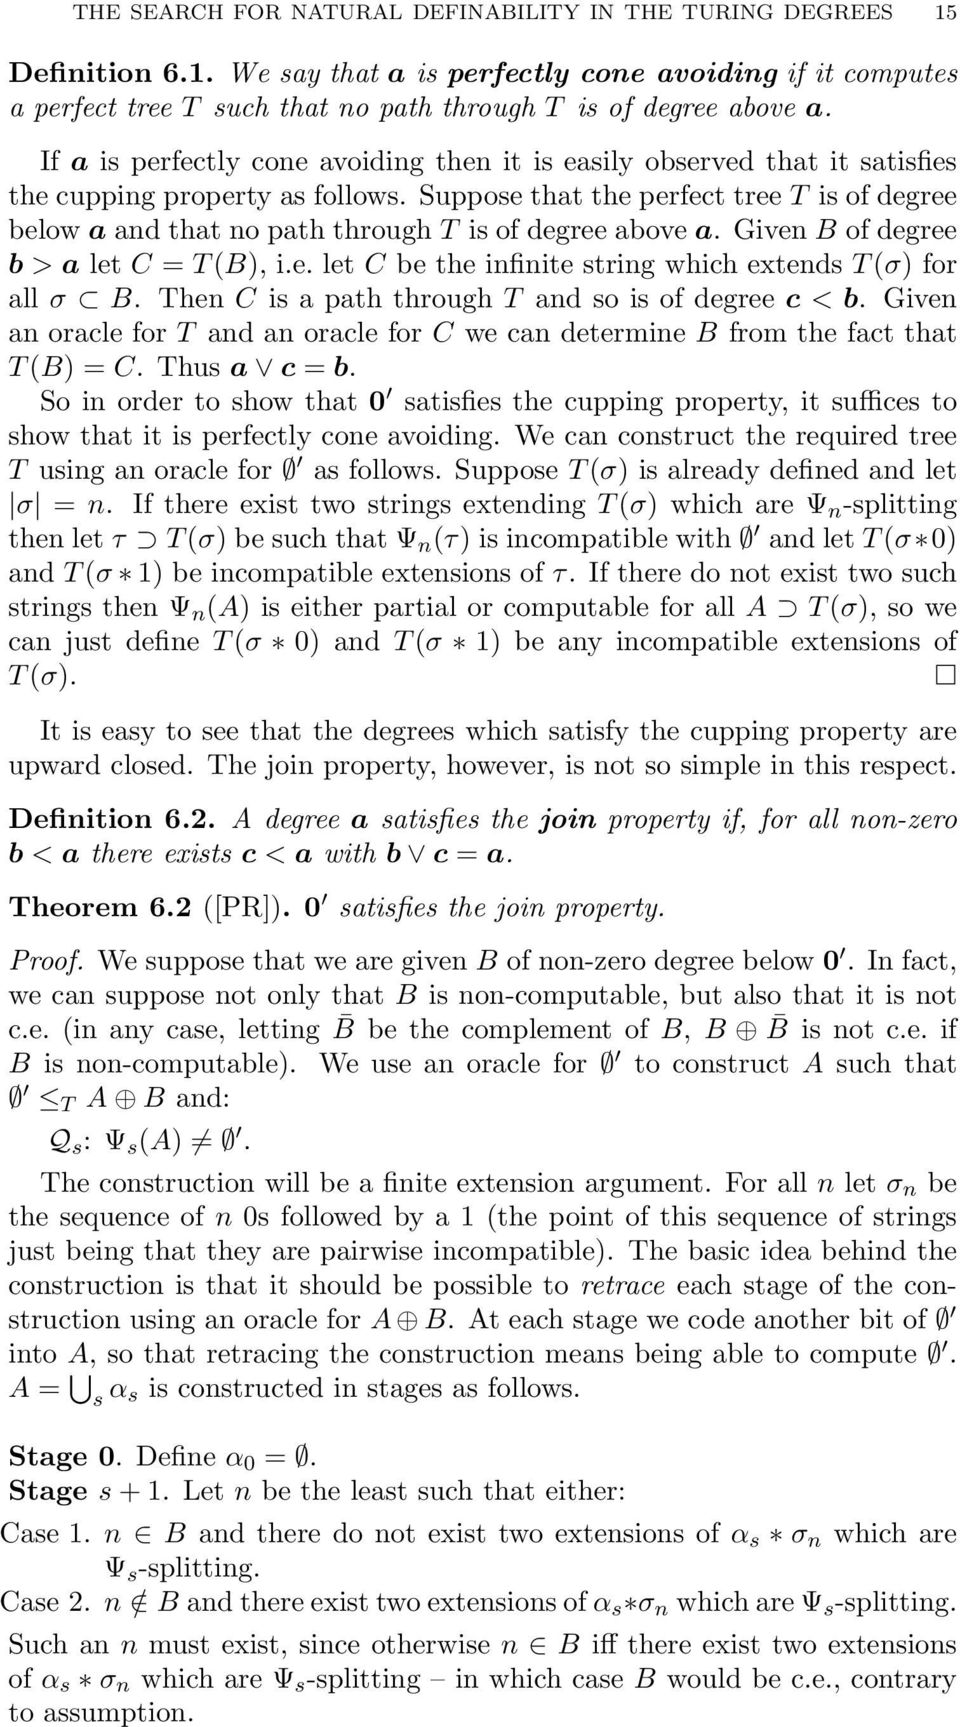 Suppose that the perfect tree T is of degree below a and that no path through T is of degree above a. Given B of degree b > a let C = T (B), i.e. let C be the infinite string which extends T (σ) for all σ B.